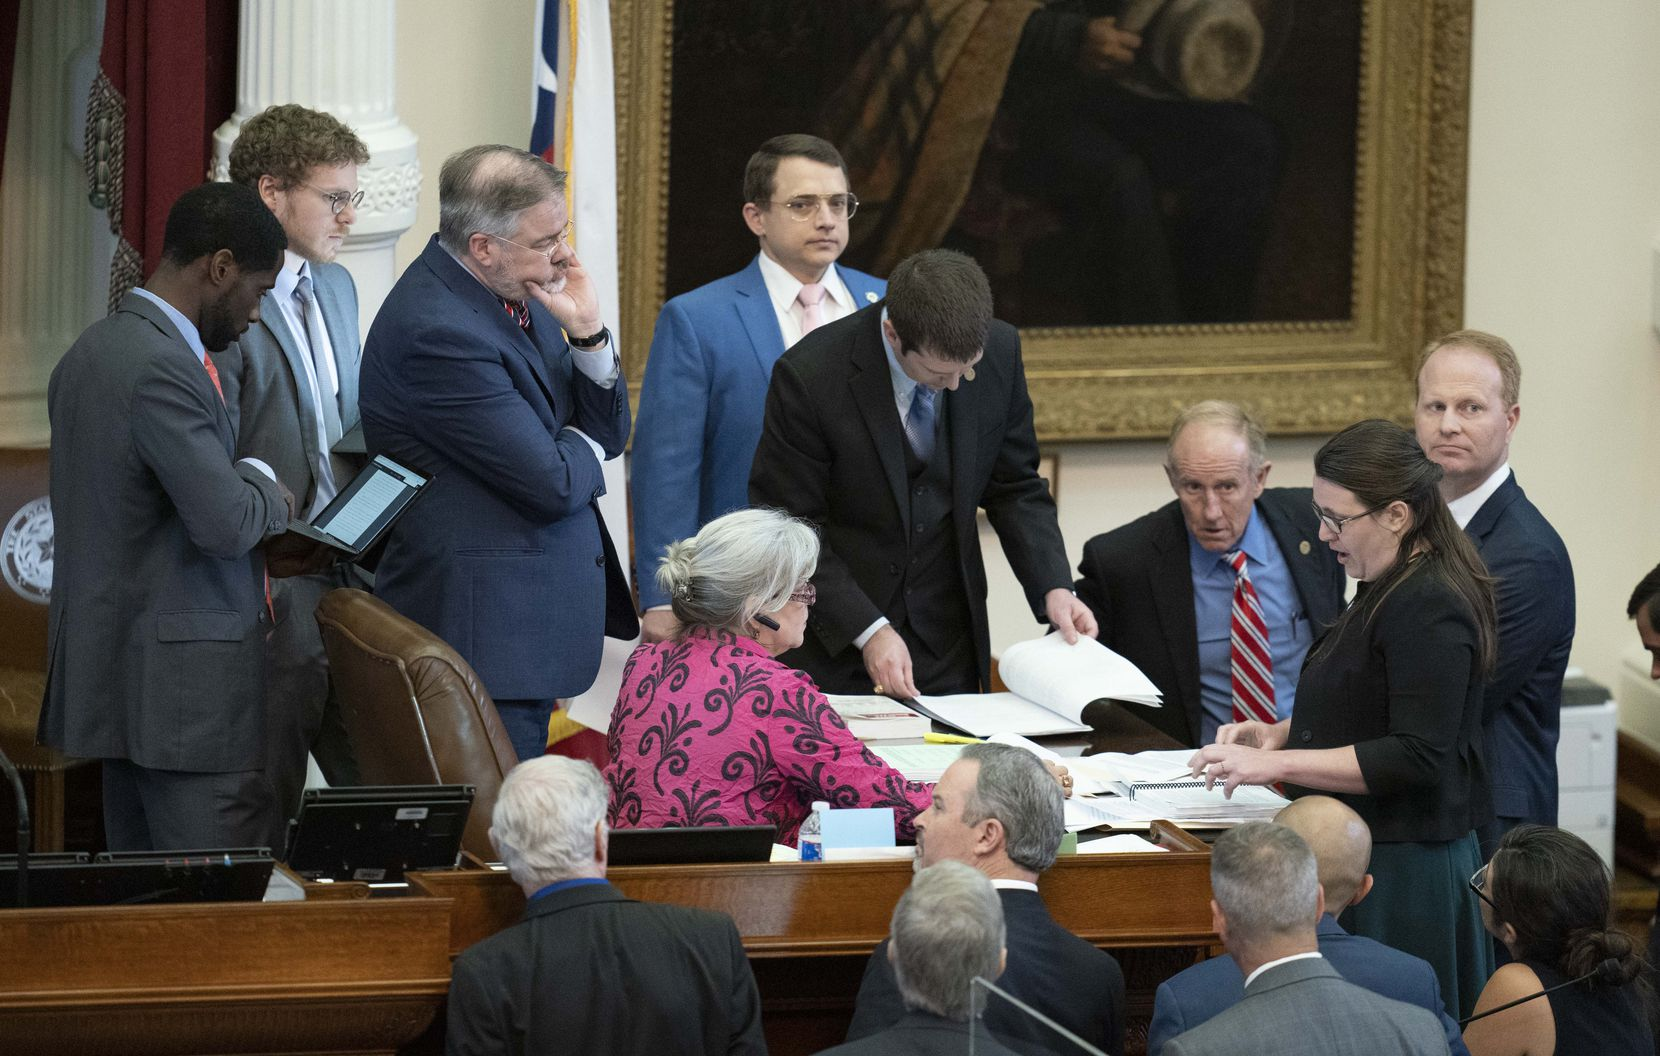 As State Rep. Briscoe Cain R-Deer Park, watches (in blue jacket), House members discuss a point of order on HR 2007, the out-of-bounds resolution on SB 7 on Sunday evening in the Texas House. Cain is chair of the House Elections Committee.  (Bob Daemmrich/CapitolPressPhoto)